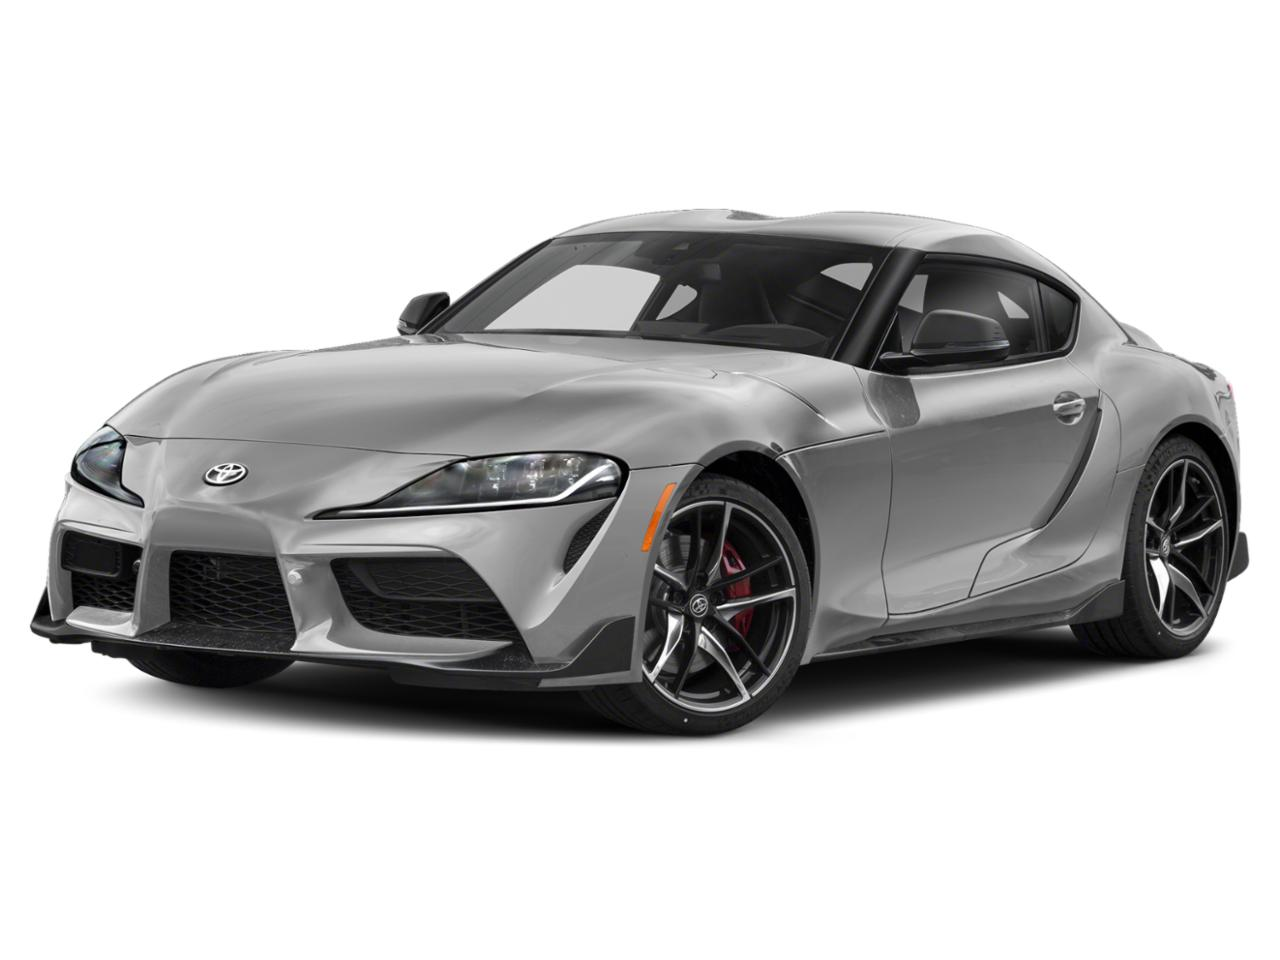 2020 Toyota GR Supra Vehicle Photo in Prince Frederick, MD 20678